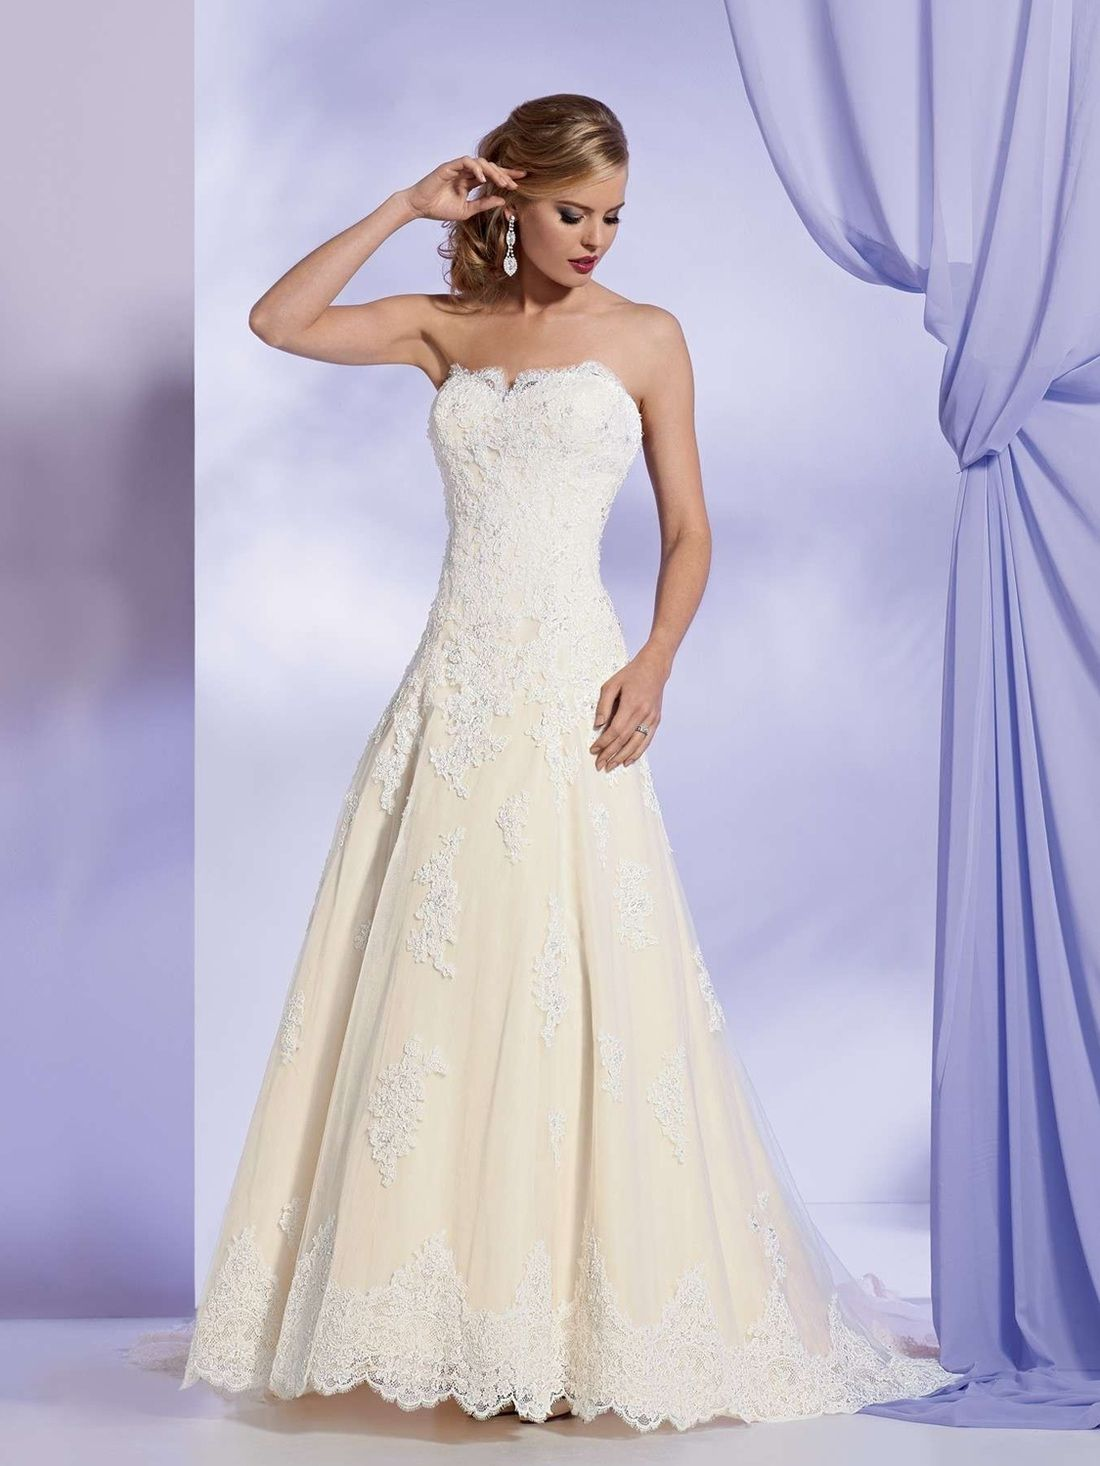 50+ Wedding Dresses For Less   Best Dresses For Wedding Check More At Http: